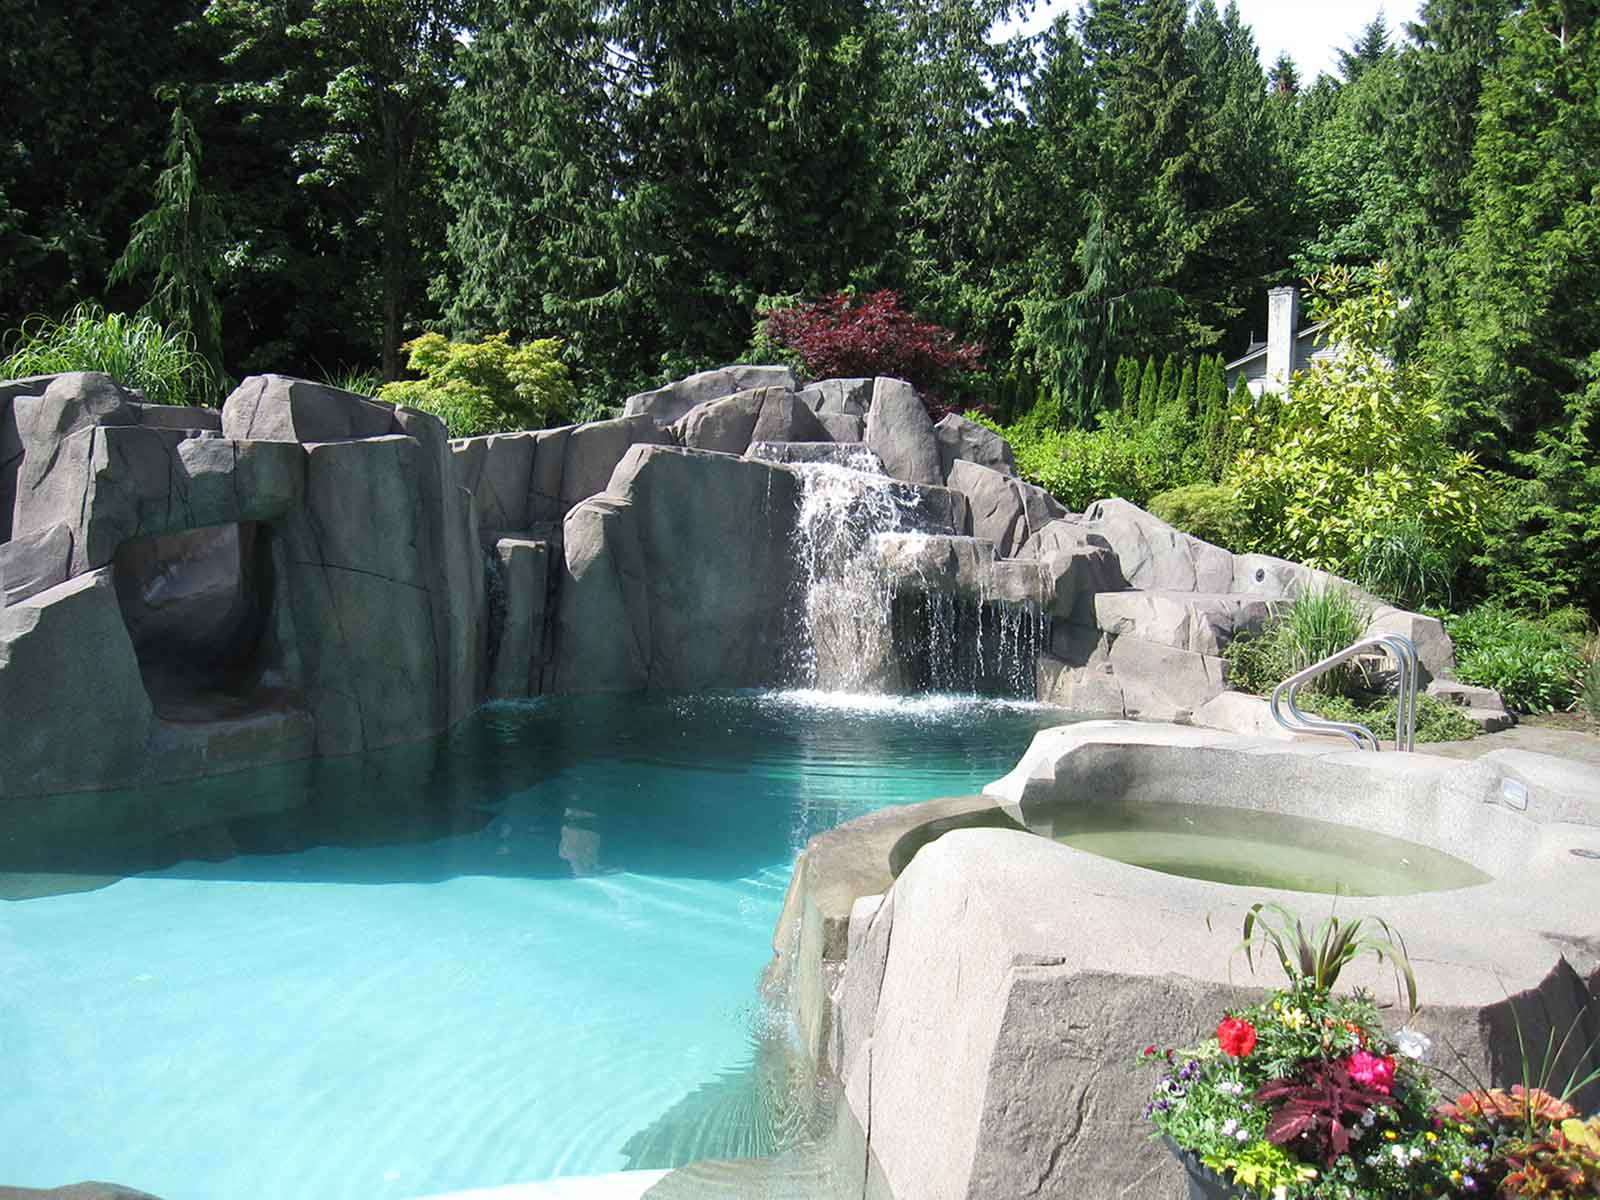 Spectacular-outdoor-swimming-pool-Mac010 - Azuro Concepts